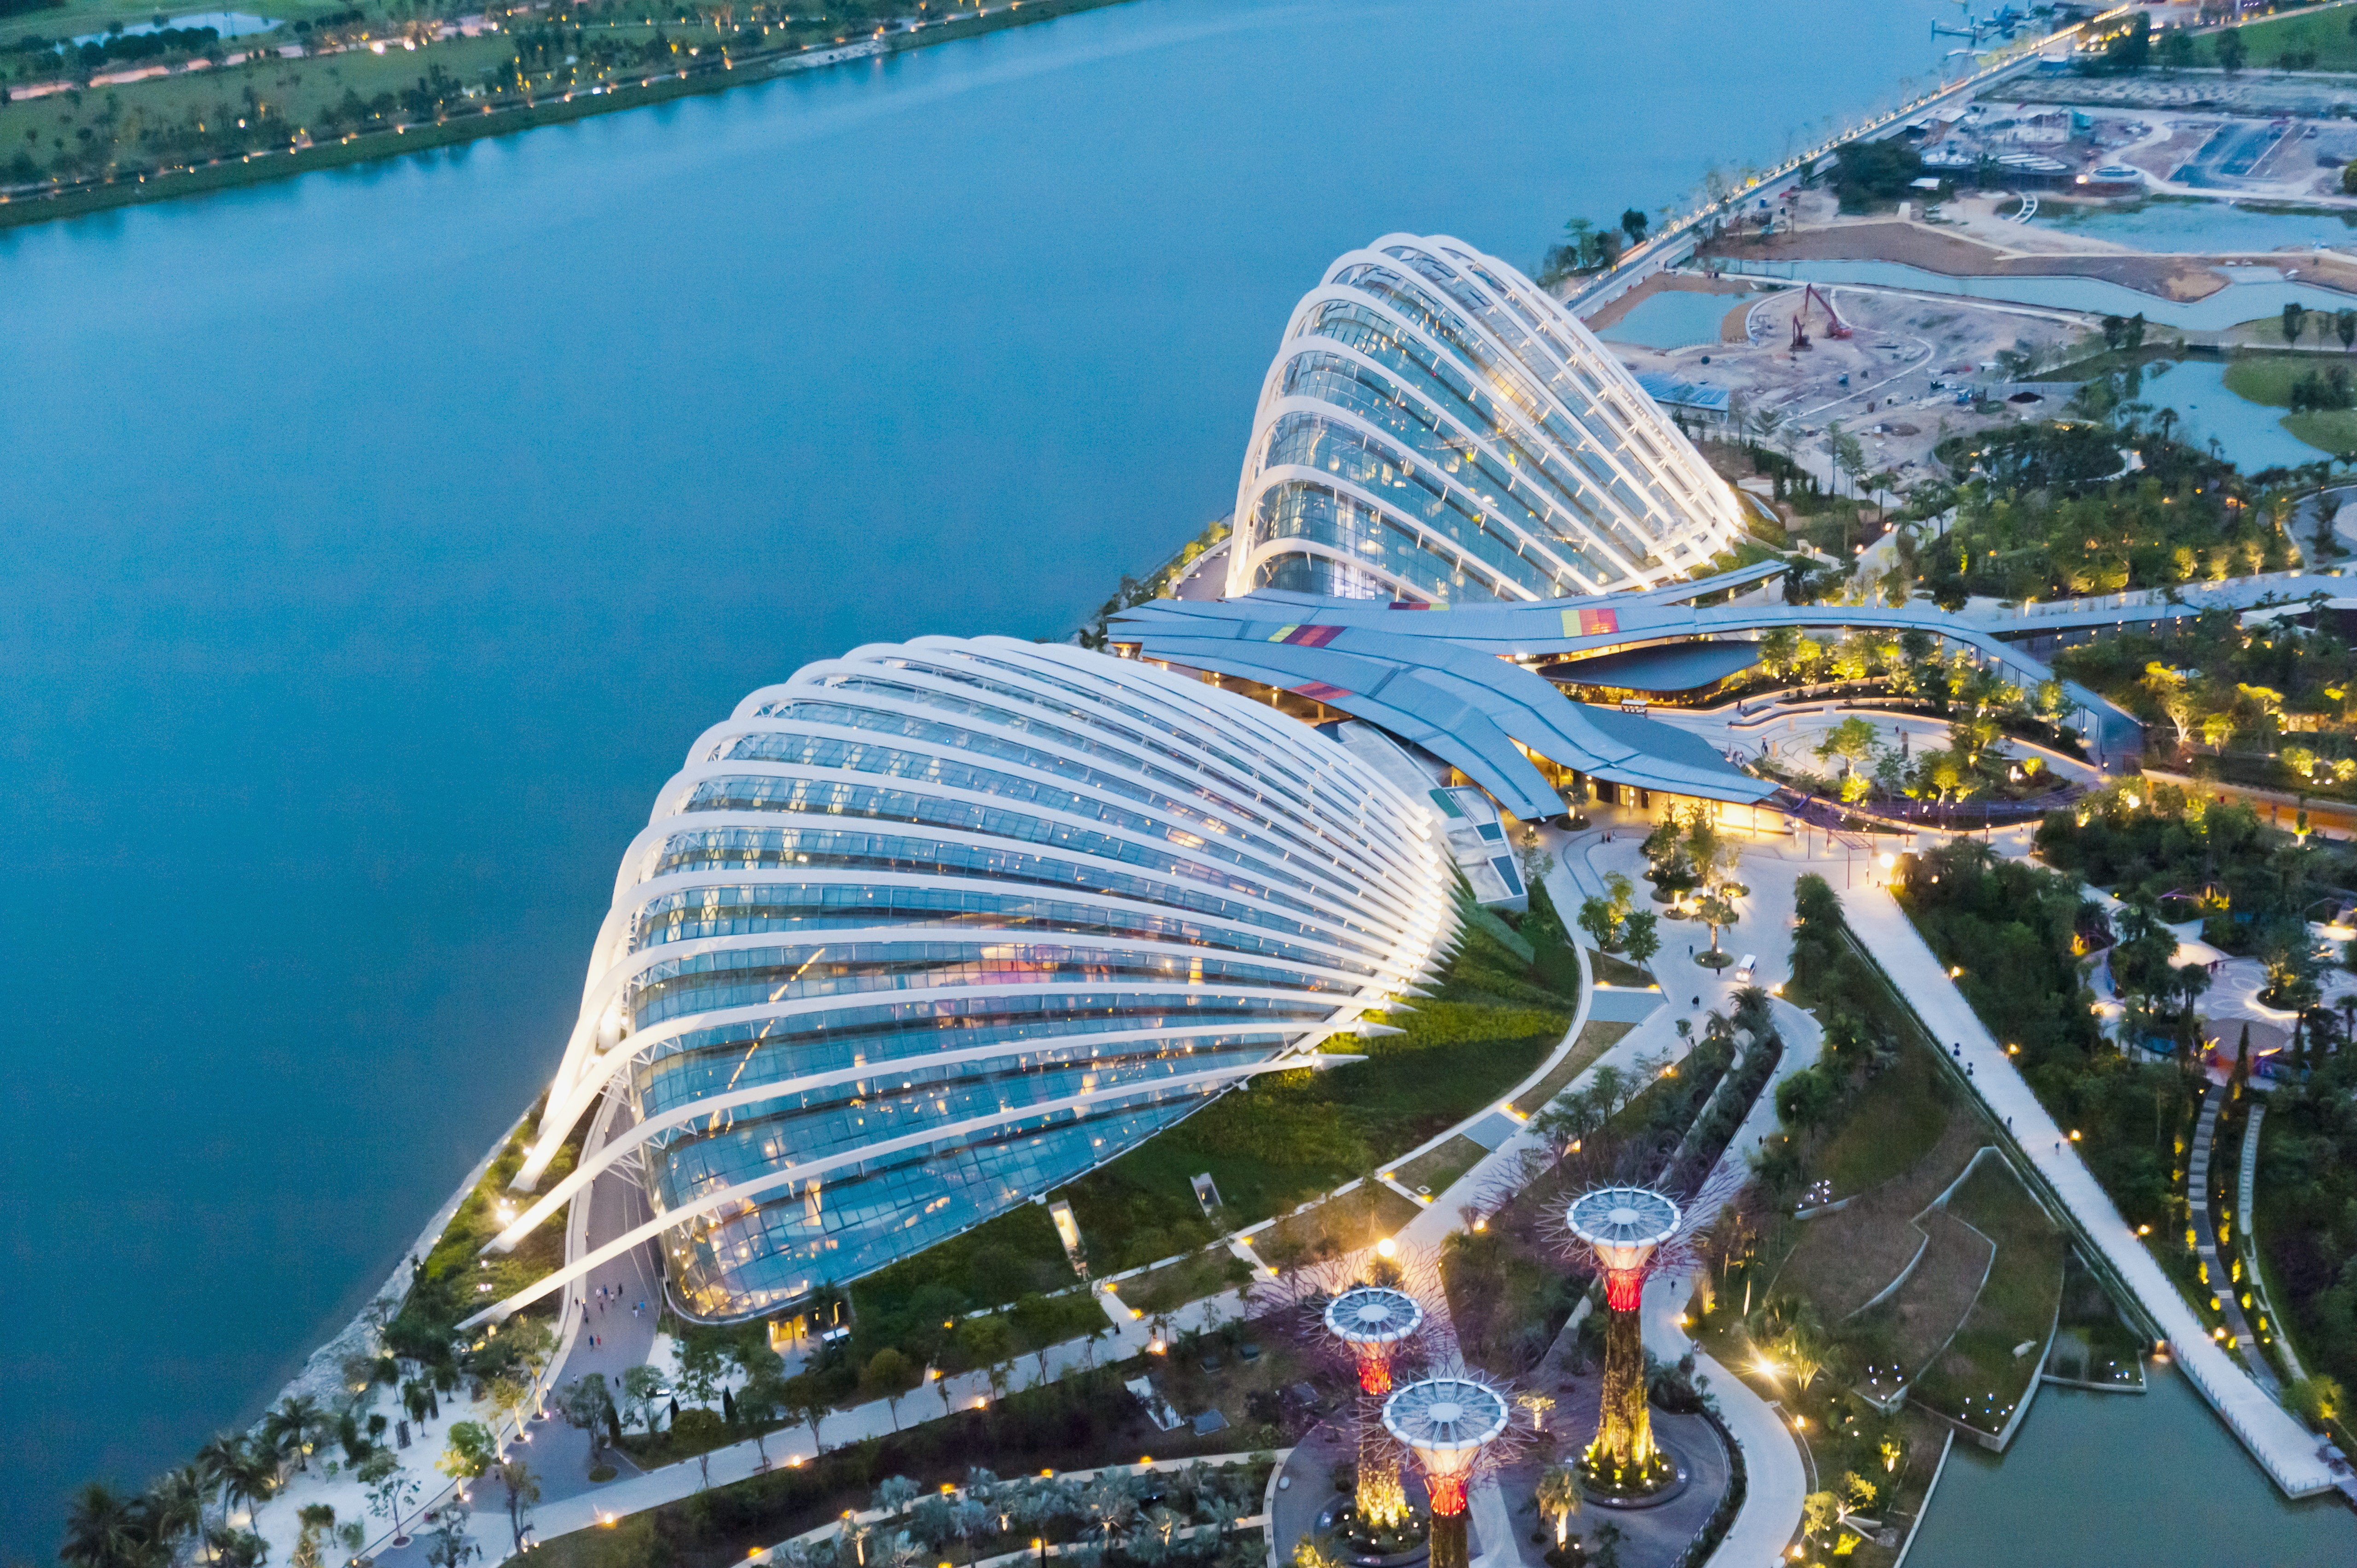 4. The Flower Dome at Gardens by the Bay in Singapore